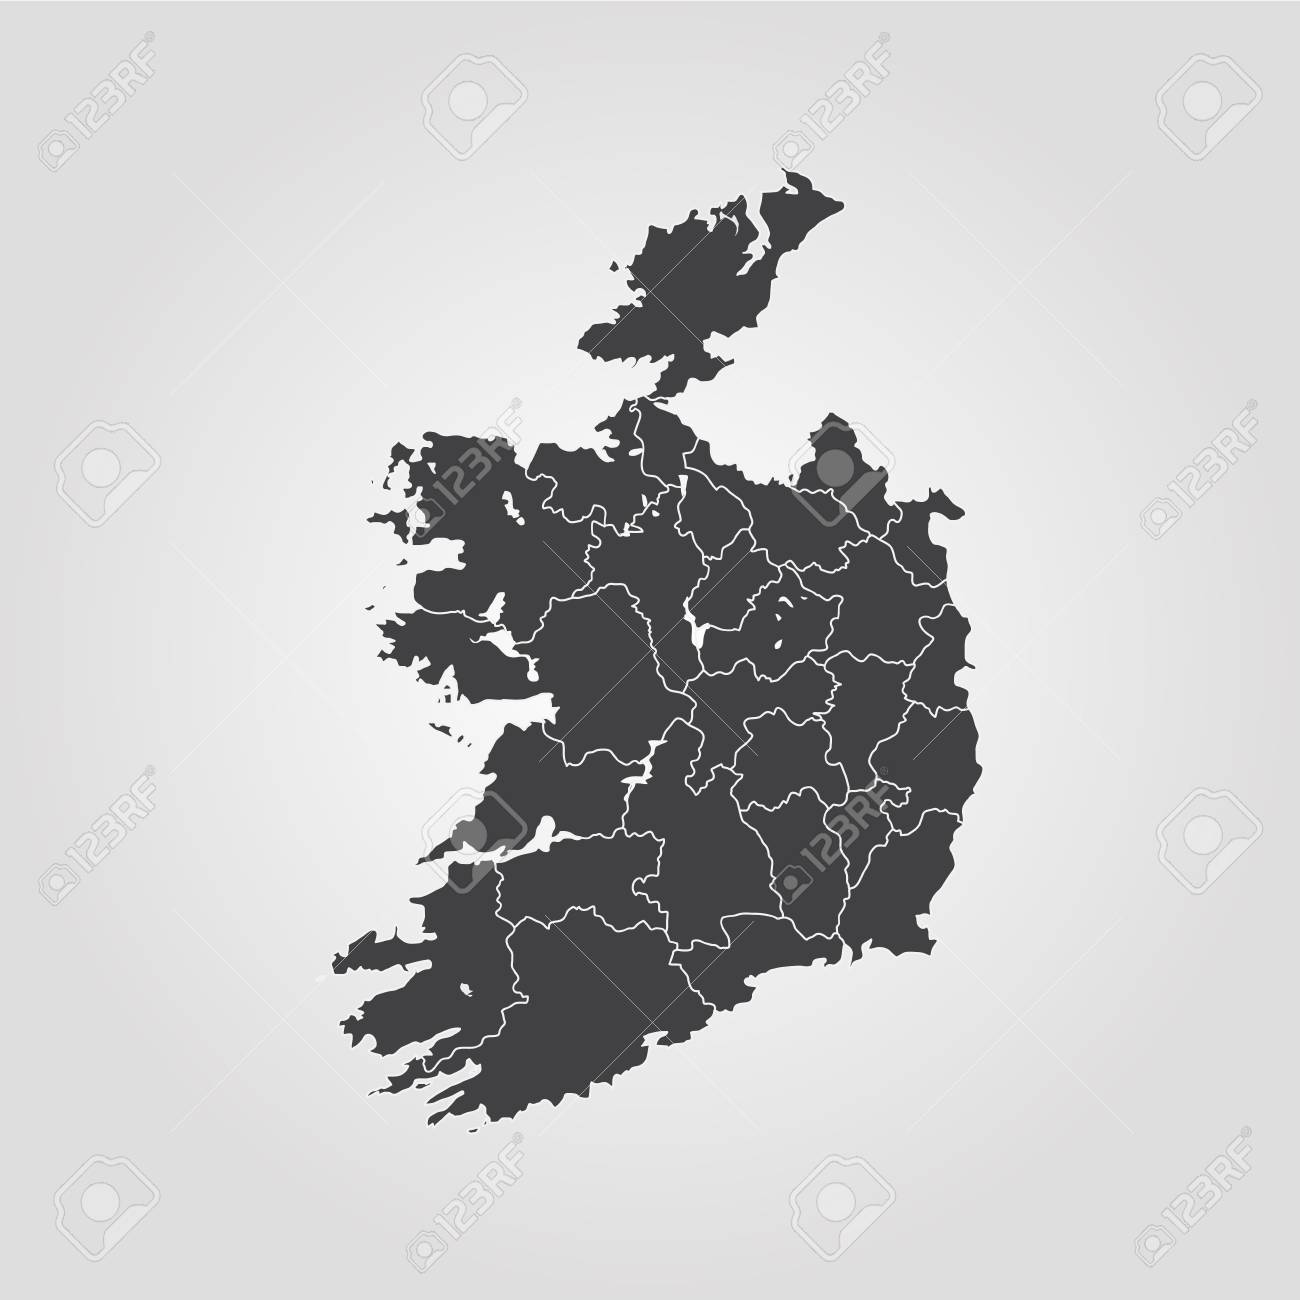 Map Of Ireland Vector Illustration World Map Royalty Free Cliparts